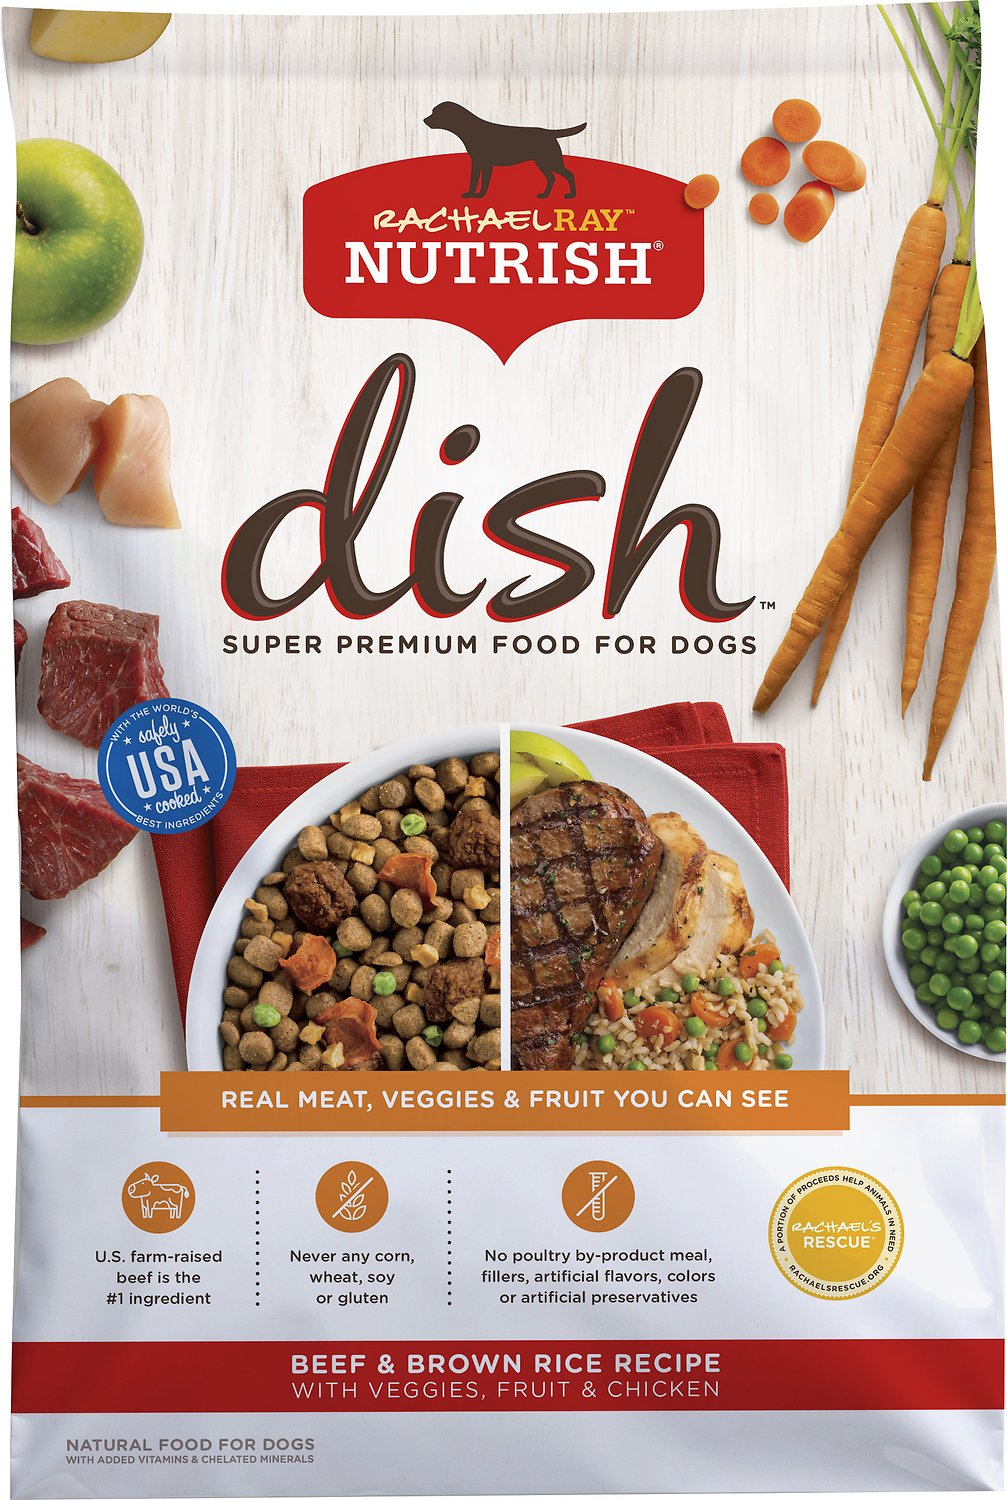 Rachael ray nutrish dish natural beef brown rice recipe with video forumfinder Images